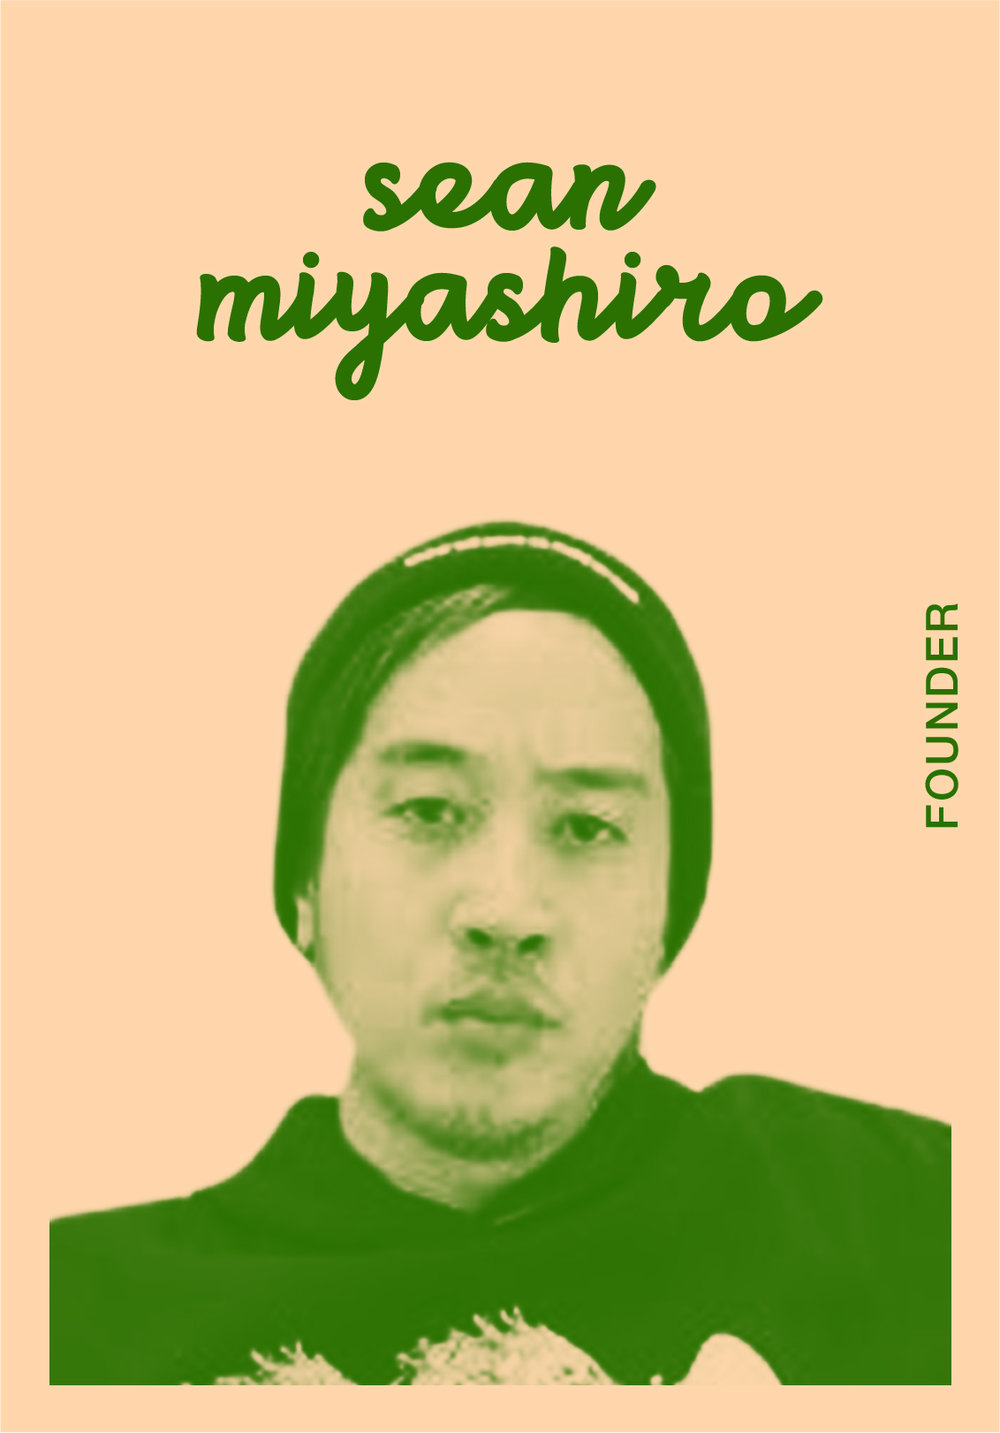 Sean Miyashiro   NEW YORKER   BLOOMBERG   PITCHFORK